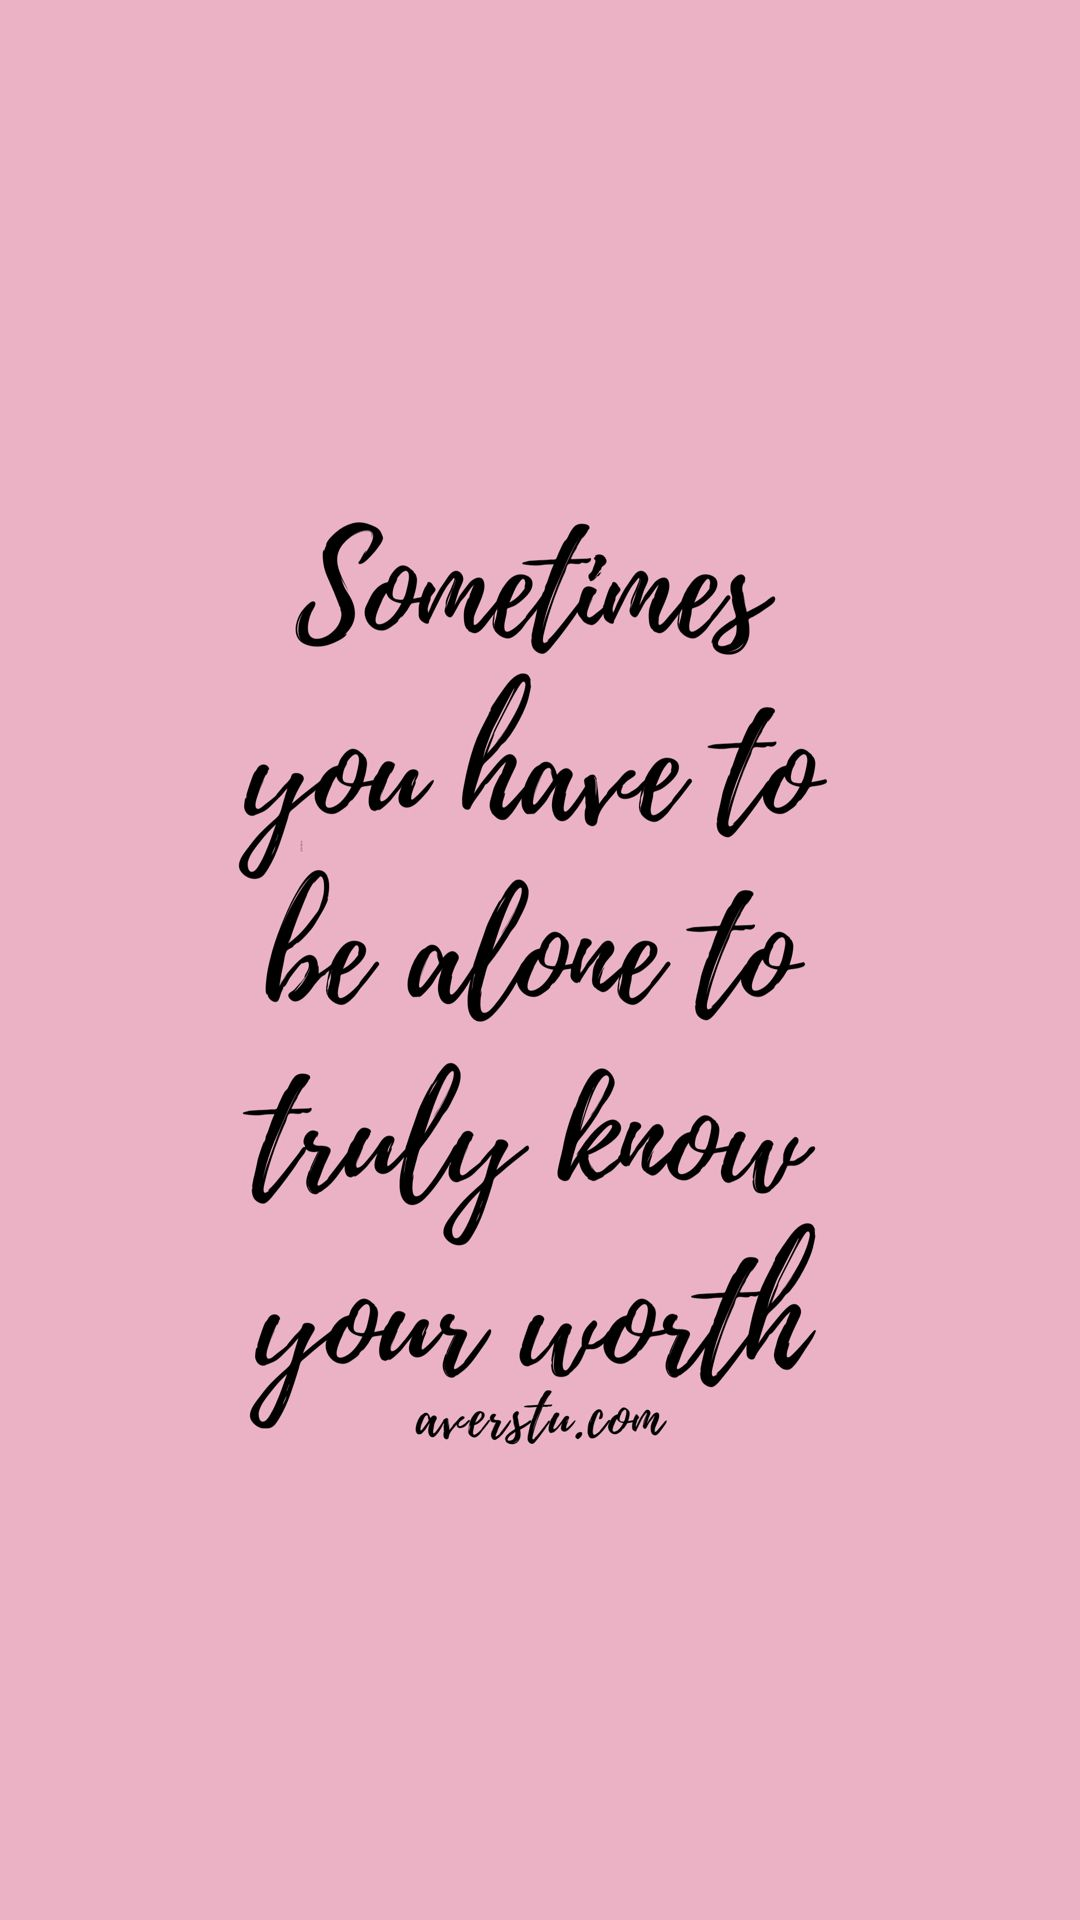 150 Top Self Love Quotes To Always Remember Part 5 The Ultimate Inspirational Life Quotes Self Love Quotes Funny Self Love Quotes Your Worth Quotes